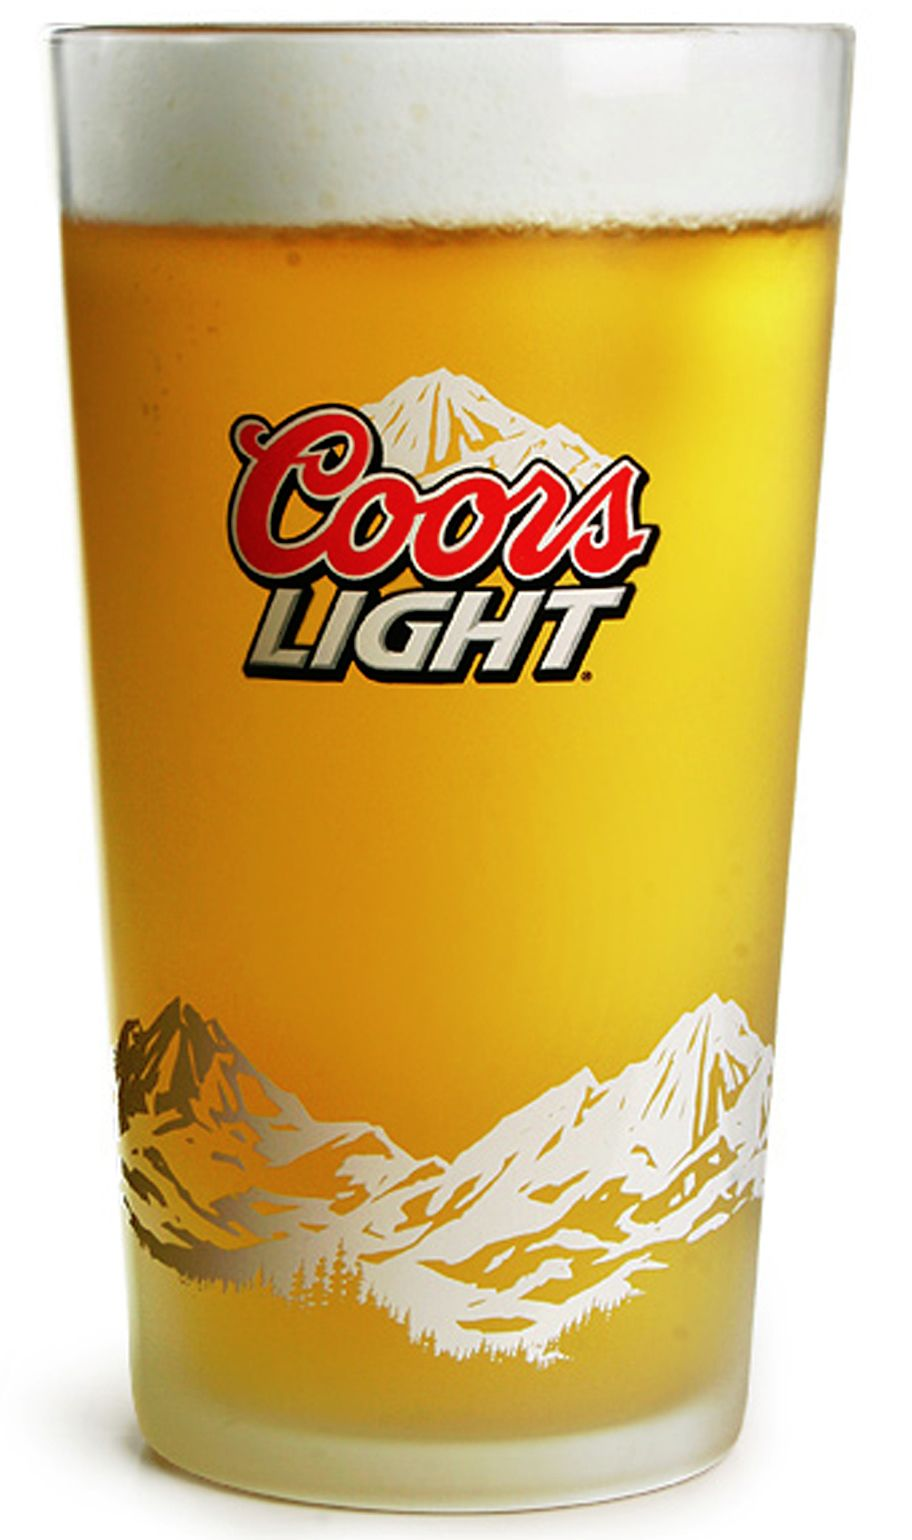 Coors Light Glass (Box of 24) | Coors light, Glass boxes, Coors